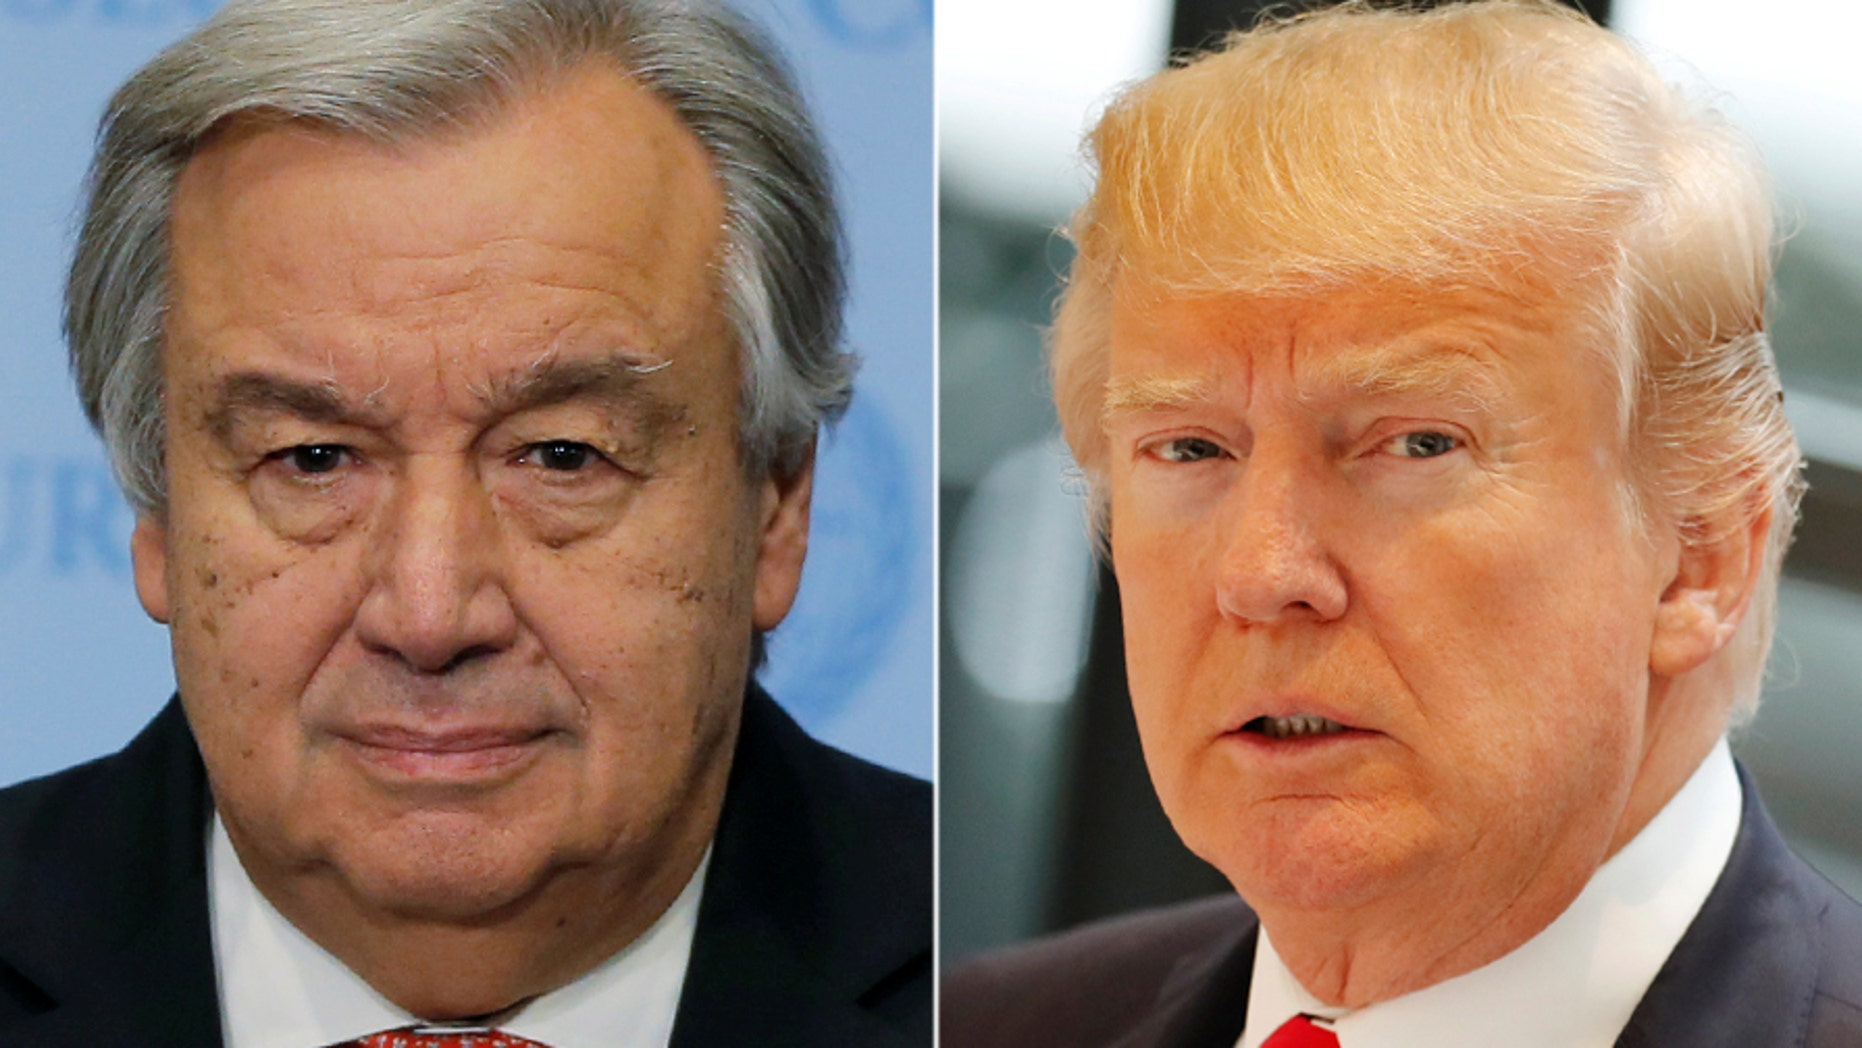 United Nations Secretary-General António Guterres & U.S. President Donald Trump.